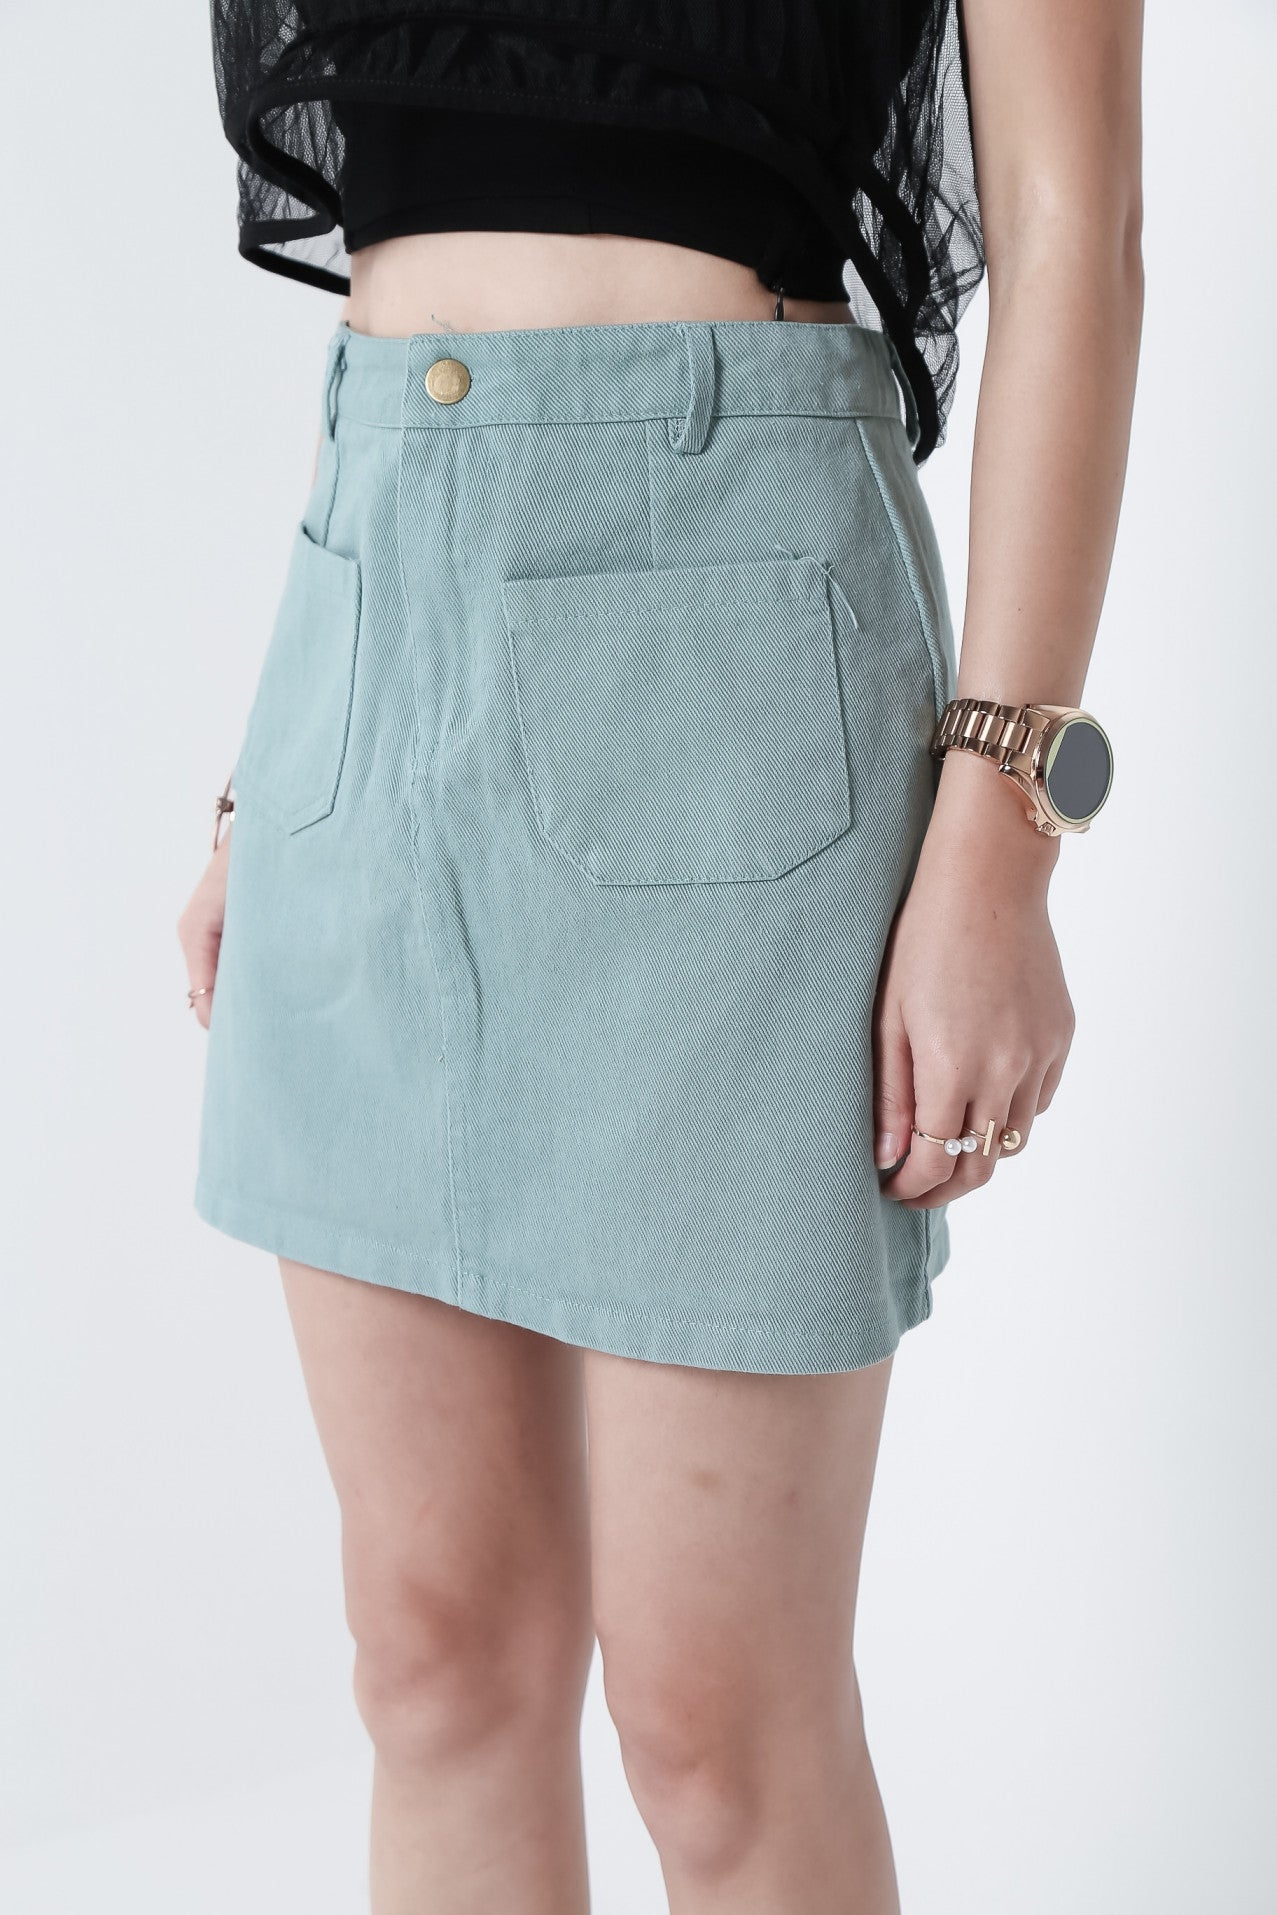 (RESTOCKED) MARSHMELLO DENIM SKIRT IN MINT - TOPAZETTE